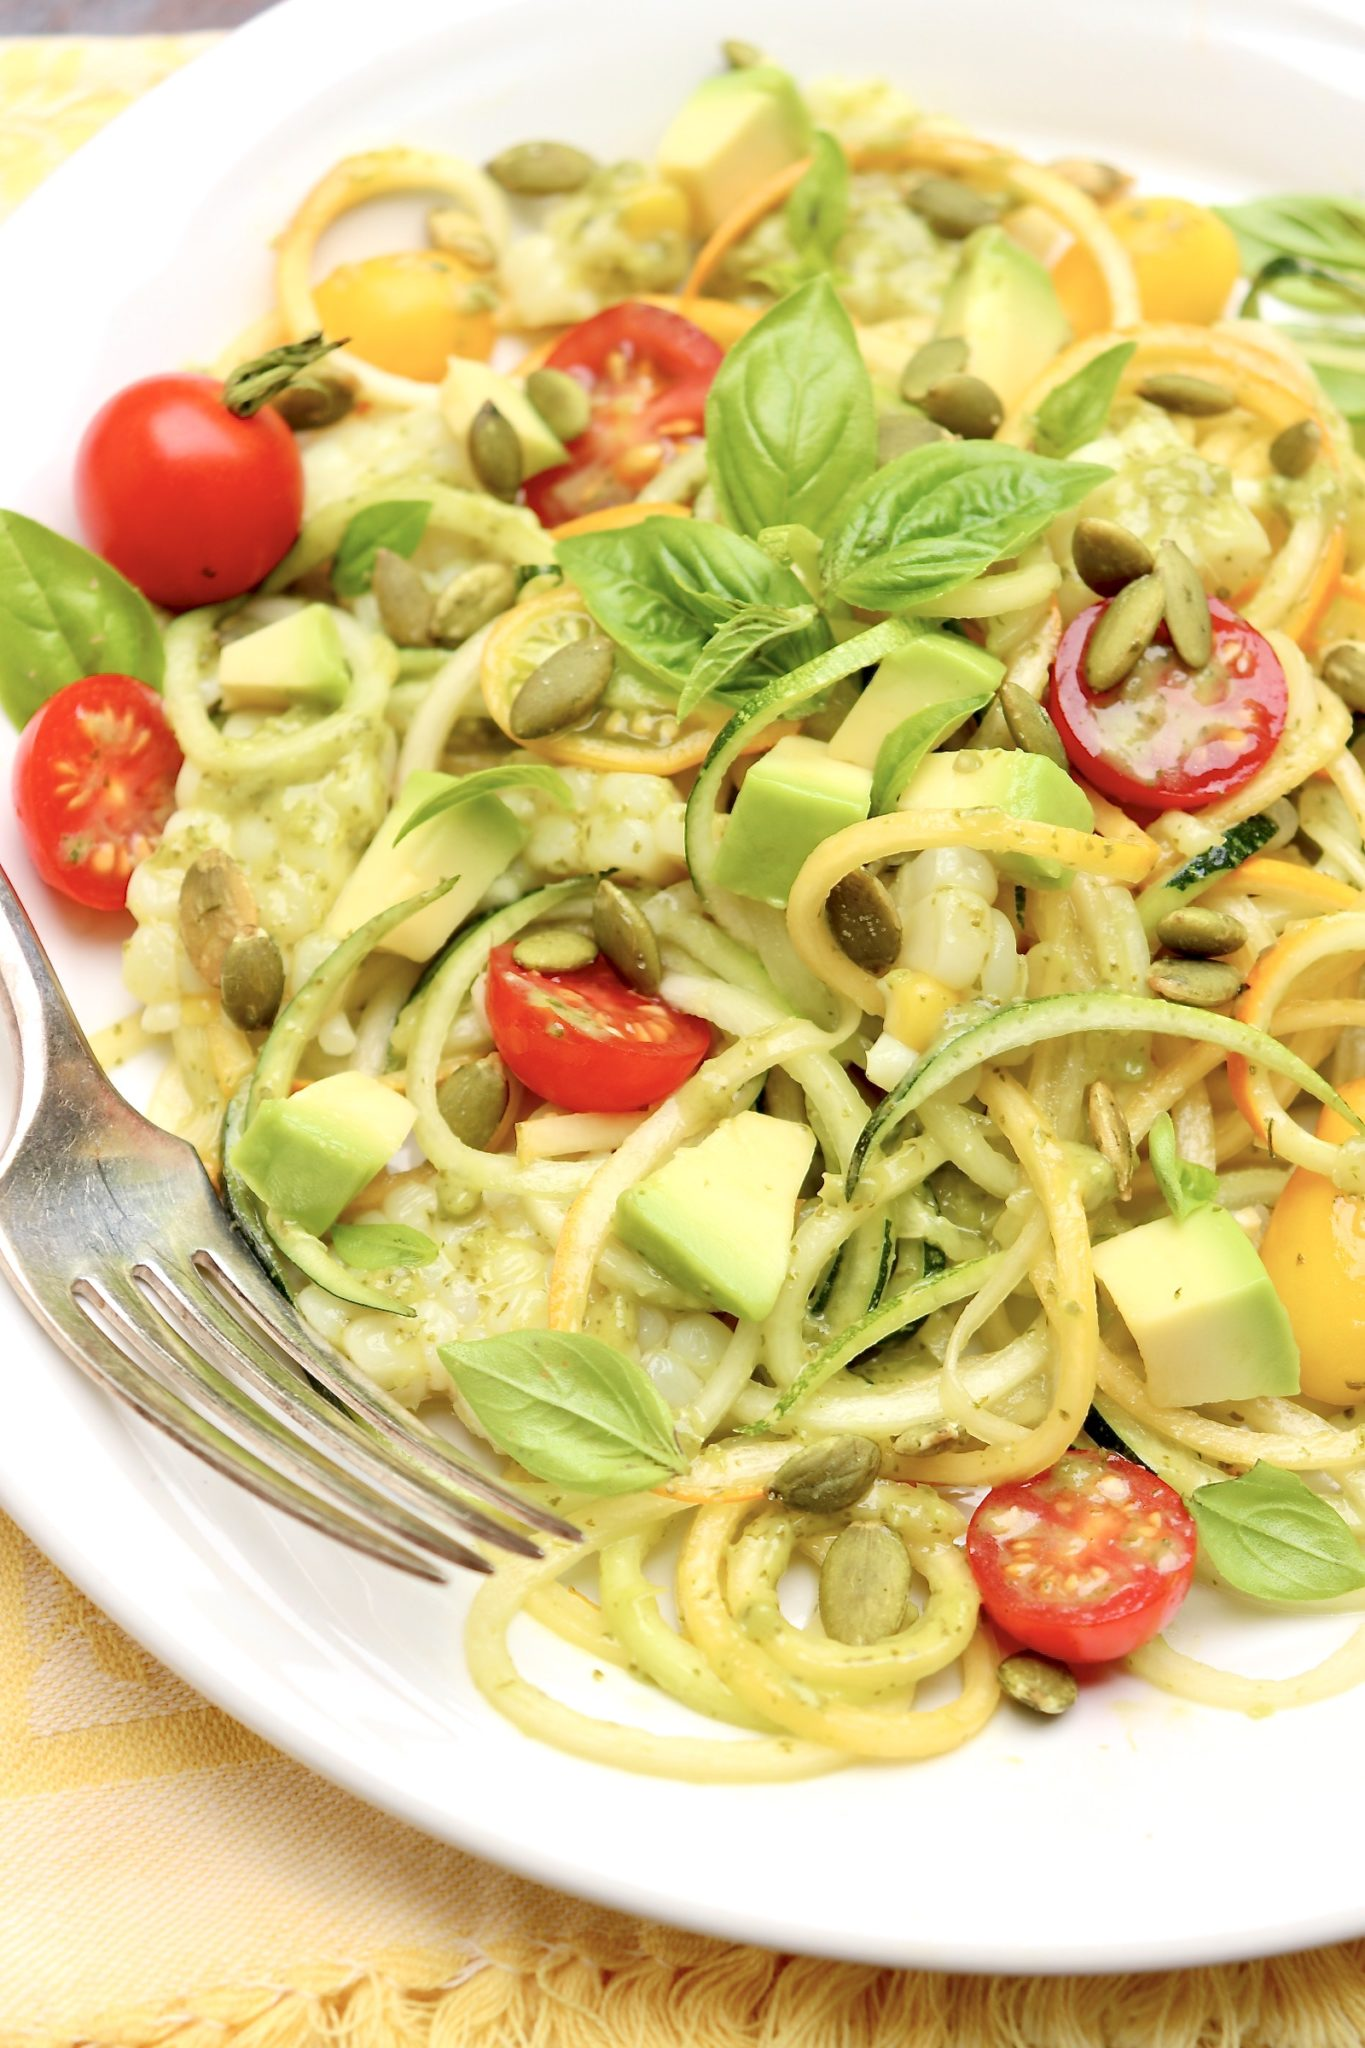 If preferred, you may use store-bought zucchini noodles. Over time, the pesto will brown and the zucchini will release some liquid, but I still find any leftovers to be quite good the next day for lunch. In this case, I usually add an extra sprinkle of crunchy seeds.